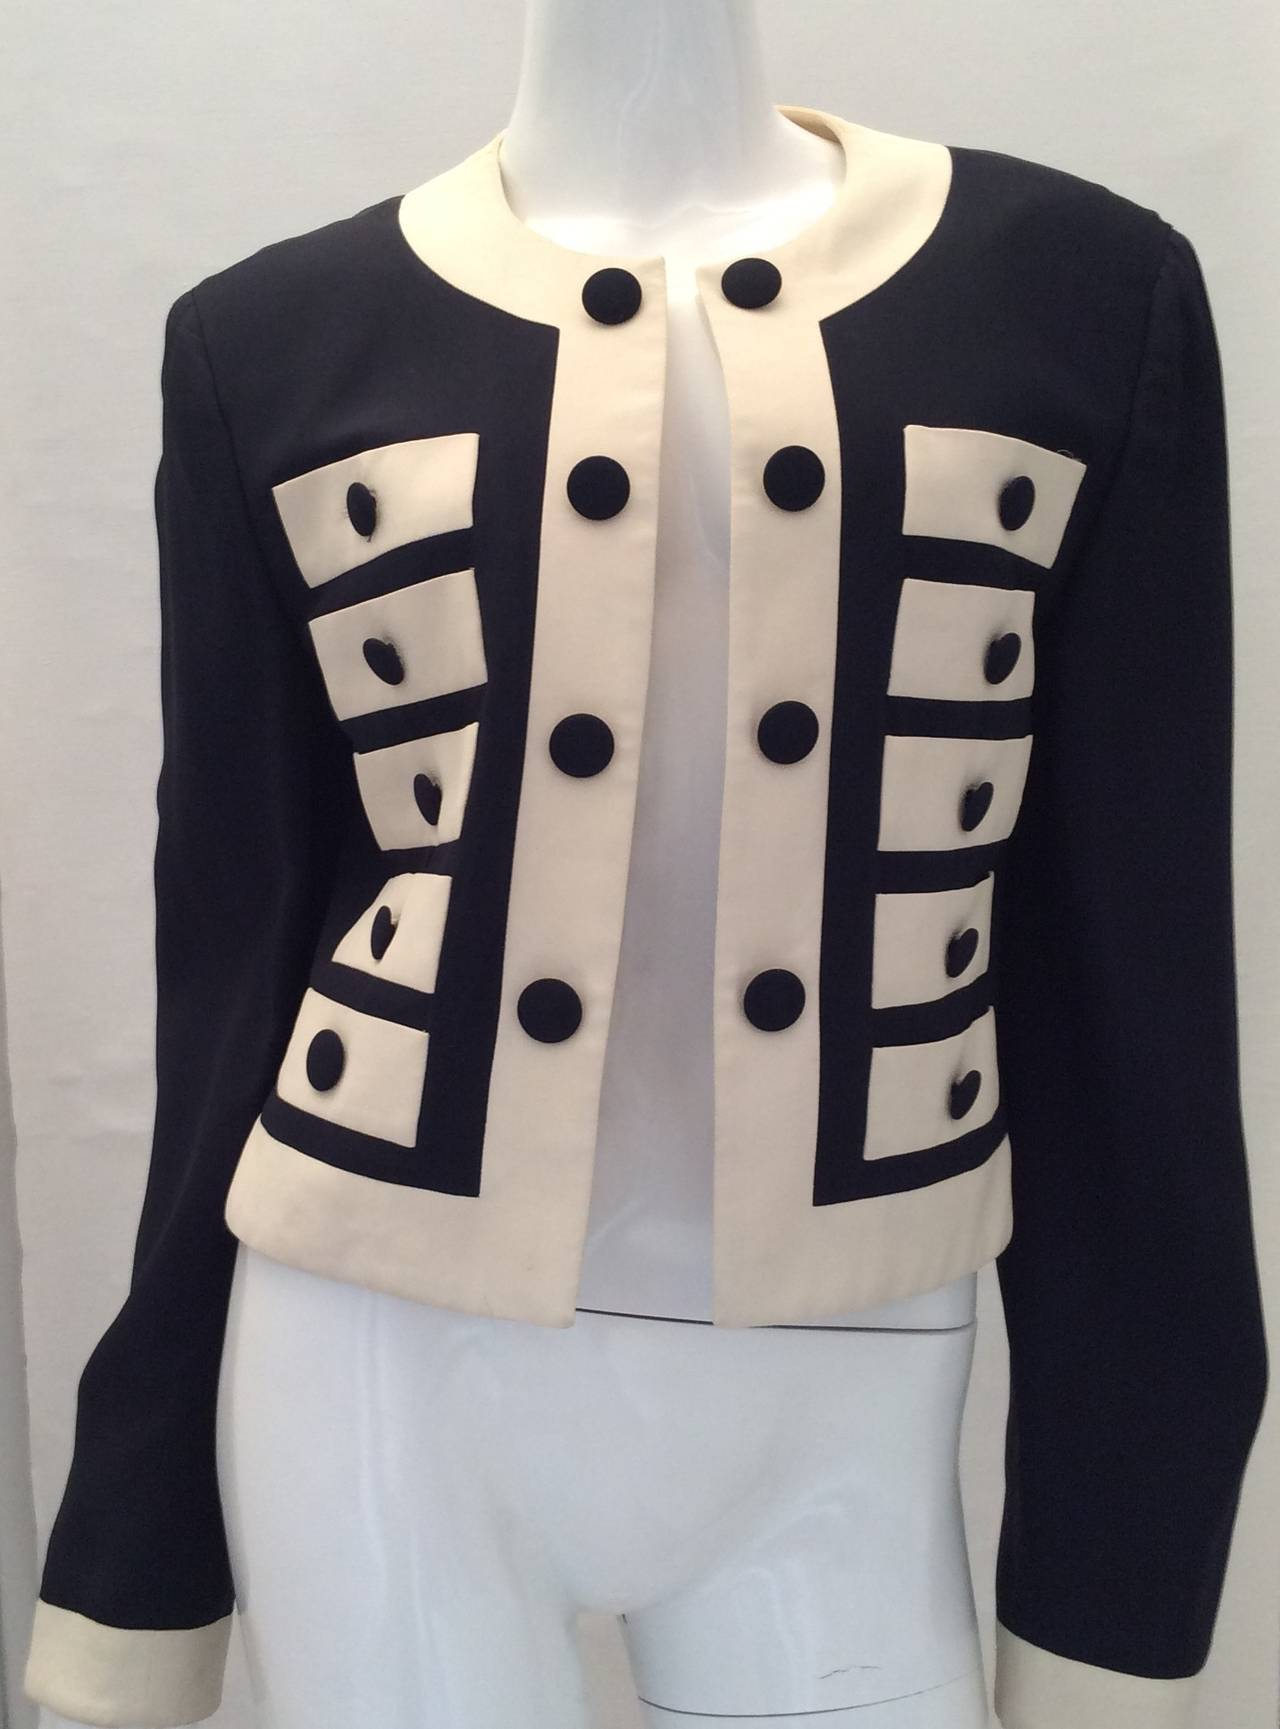 Moschino Couture Jacket - Navy and White - Early to mid 90's For Sale 1